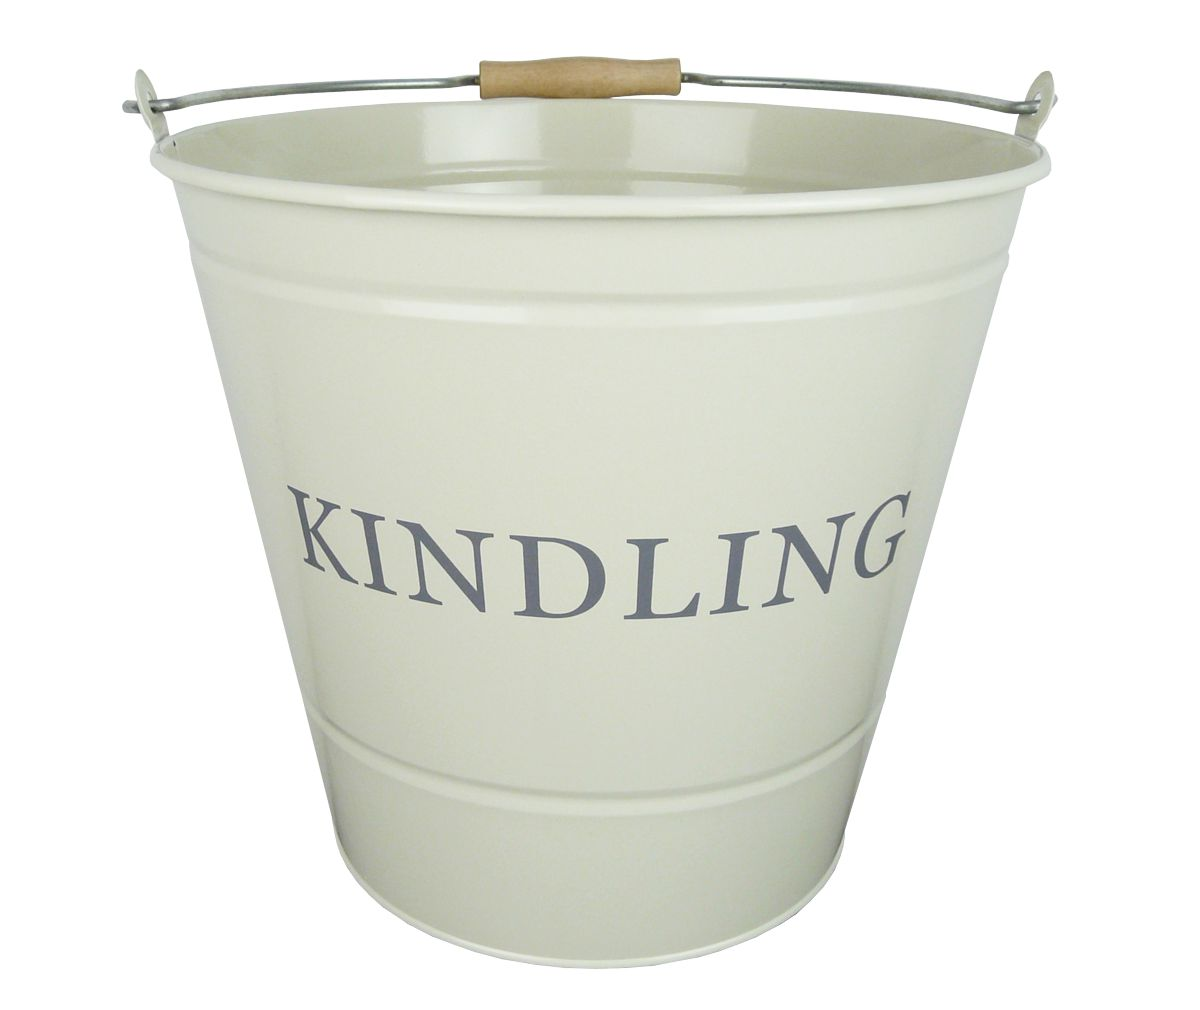 Kindling Bucket Height: 12 Diameter: 12.5